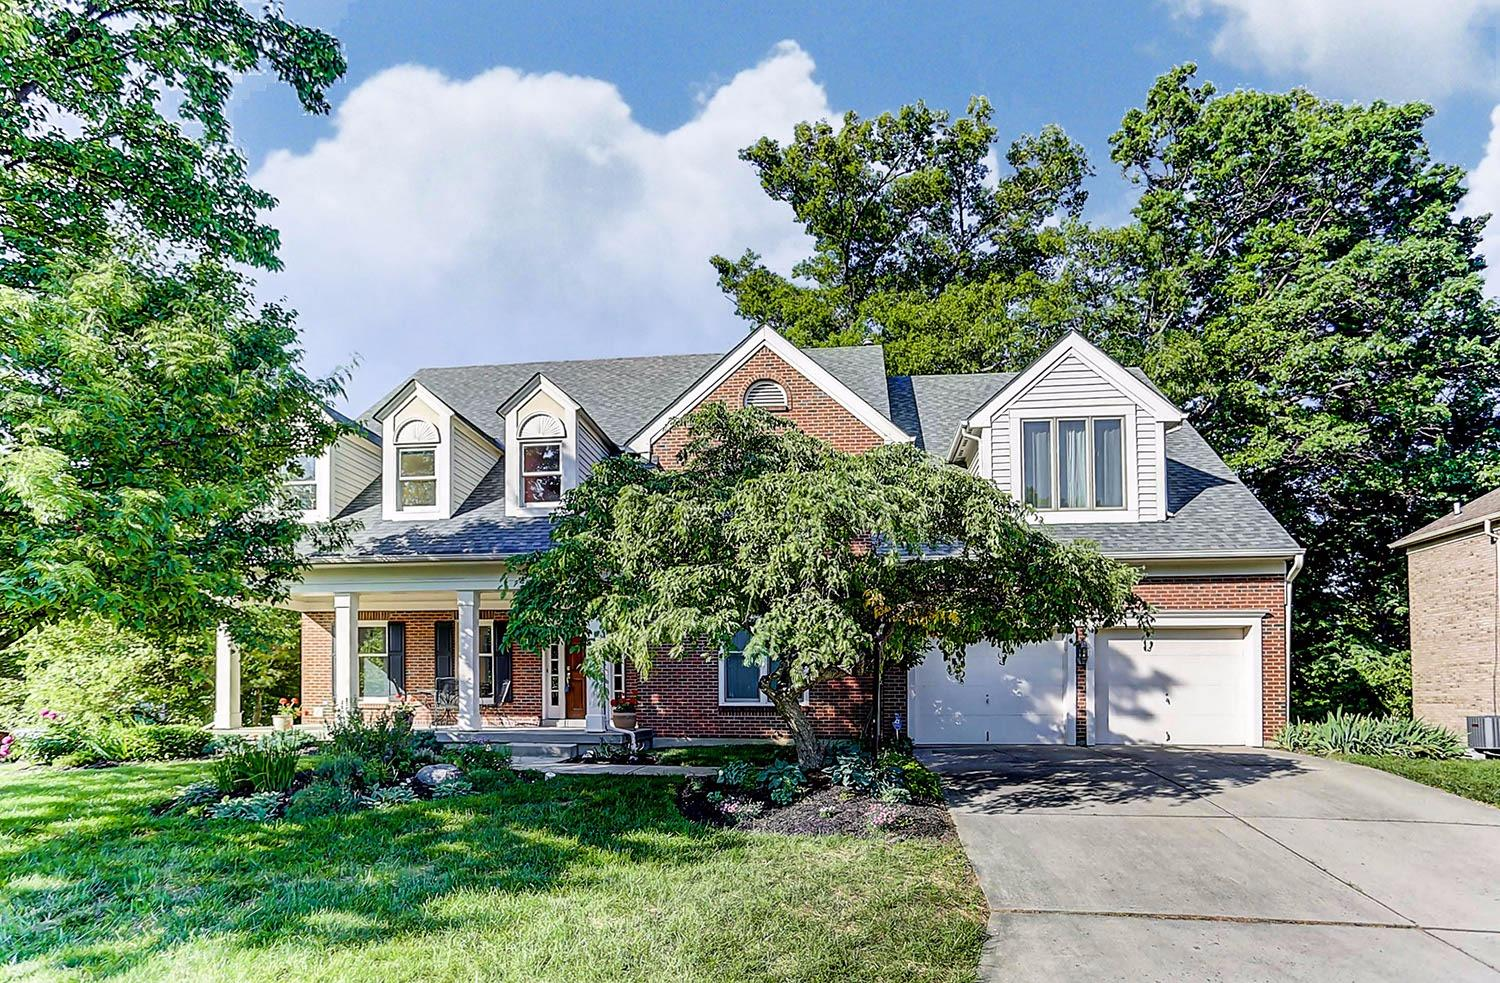 4052 Clifton Ridge Dr Clifton, OH